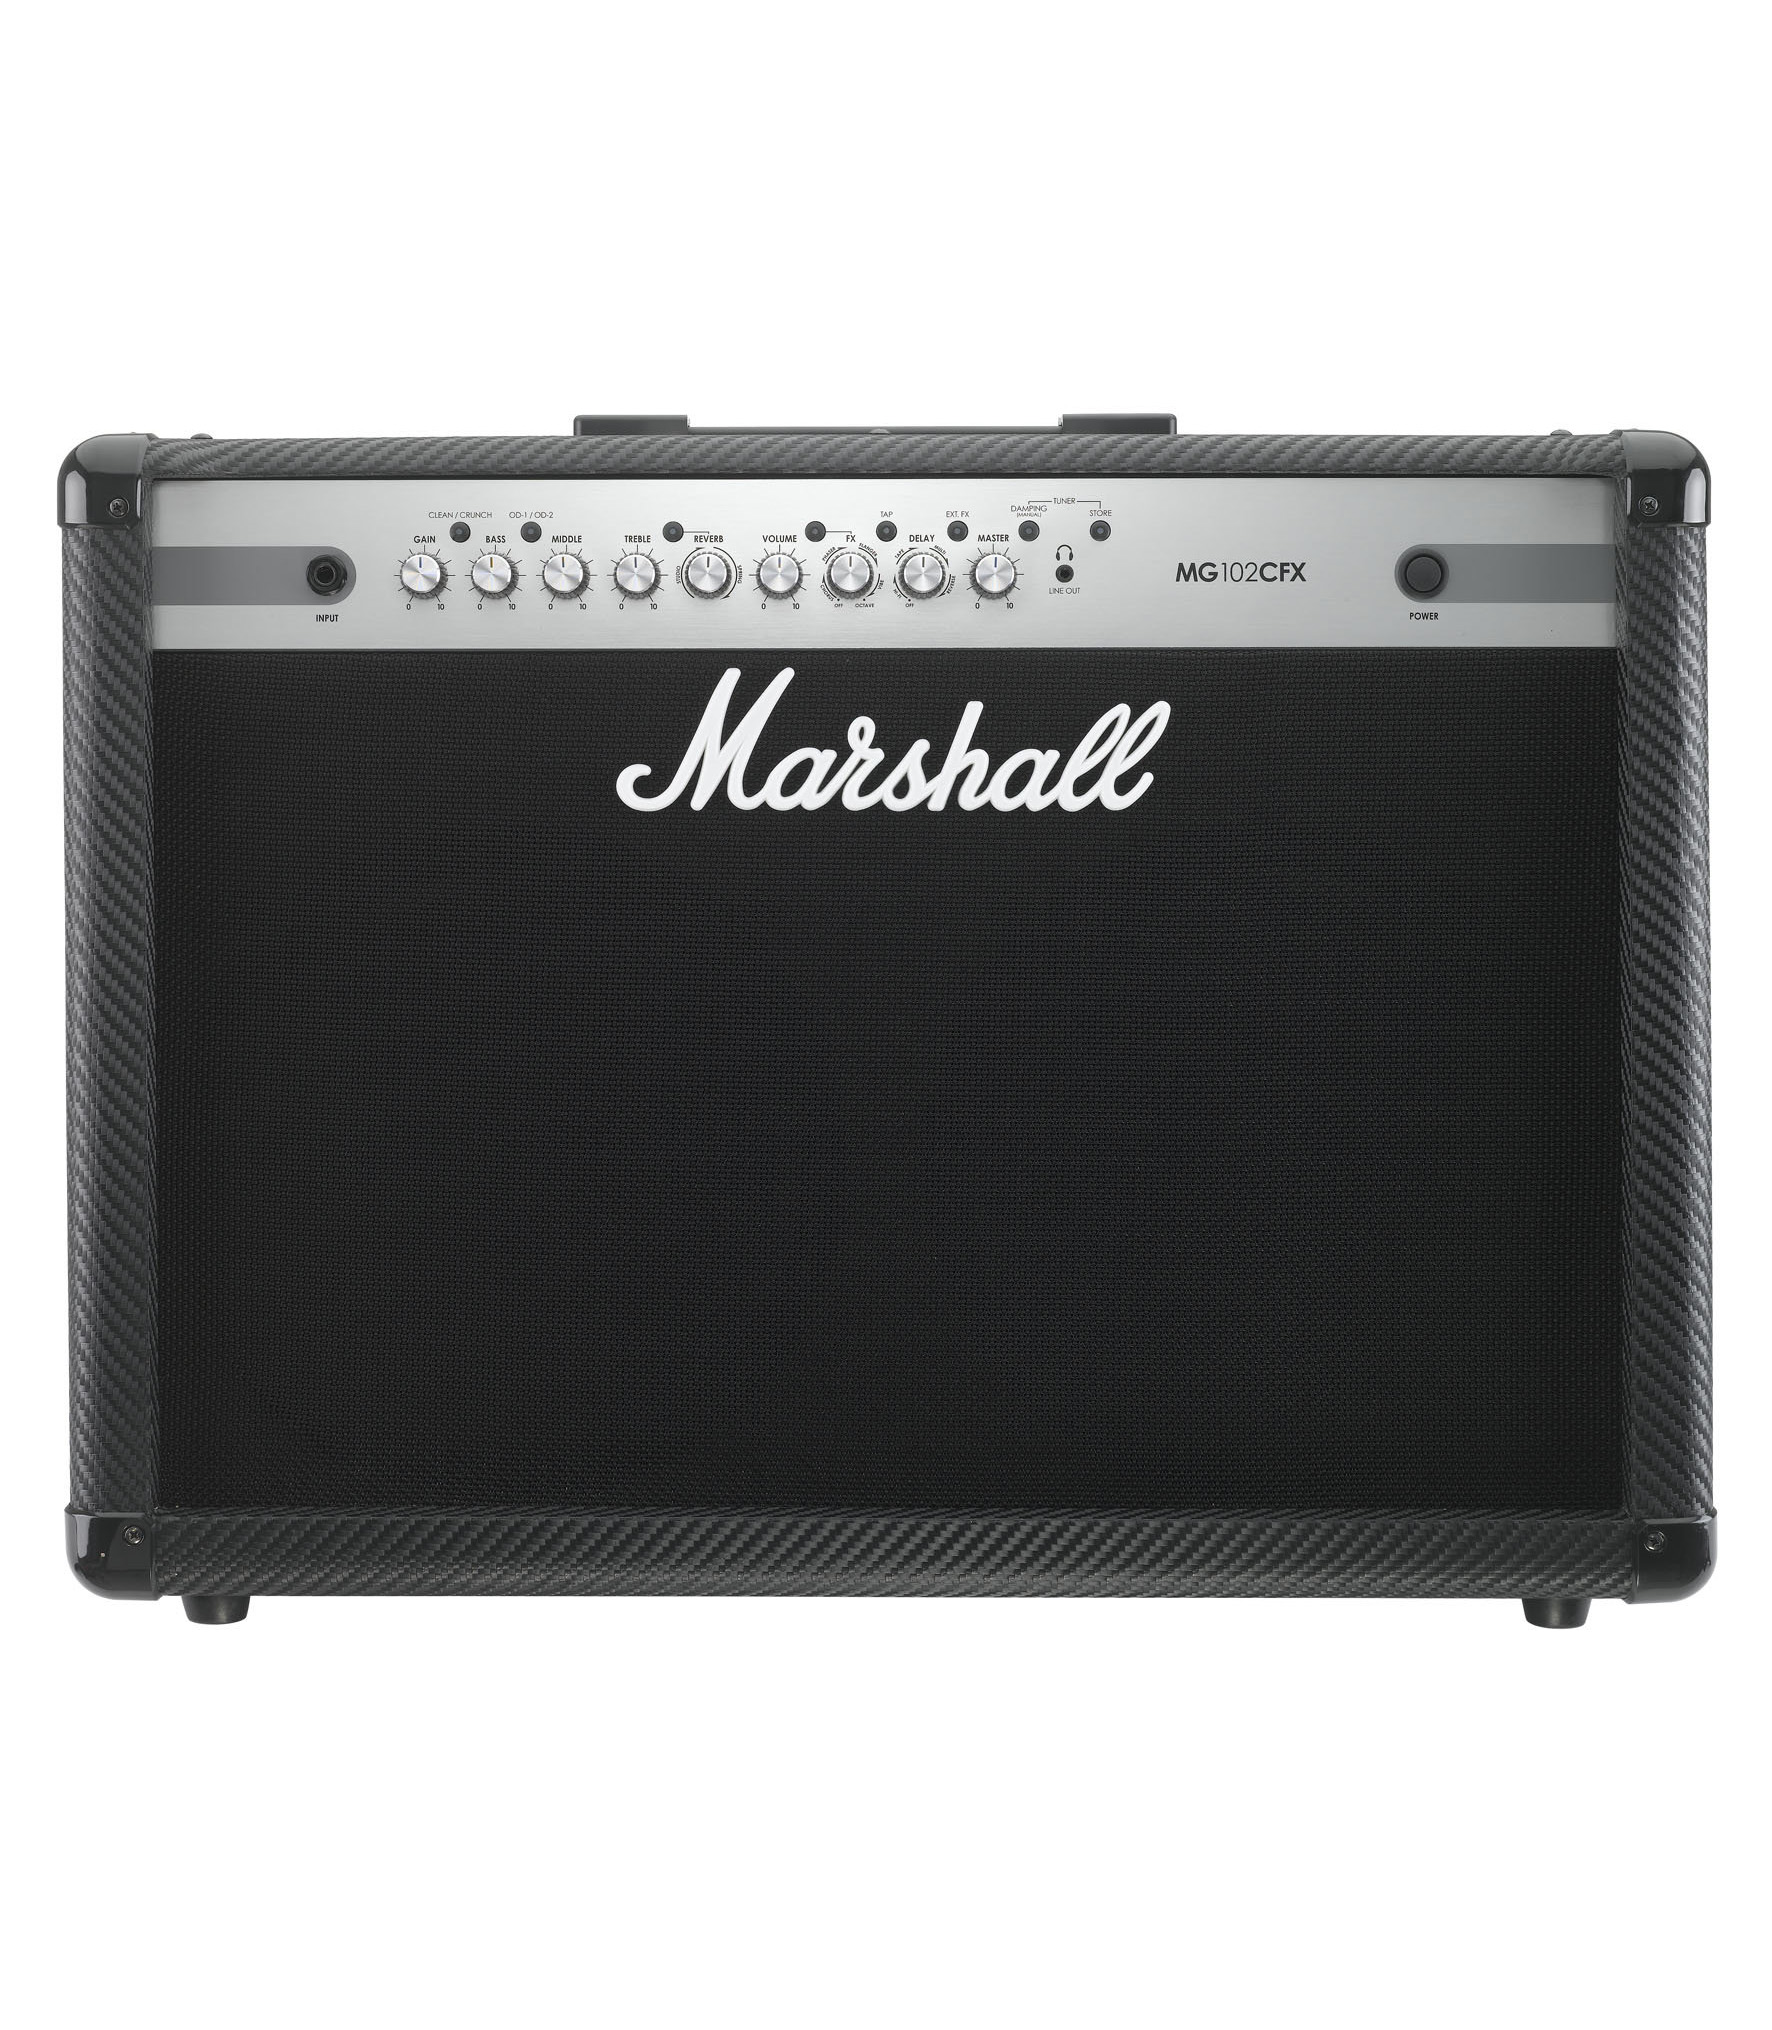 marshall - MG102CFX Solid state Guitar Amp 4 Channel - Melody House Musical Instruments